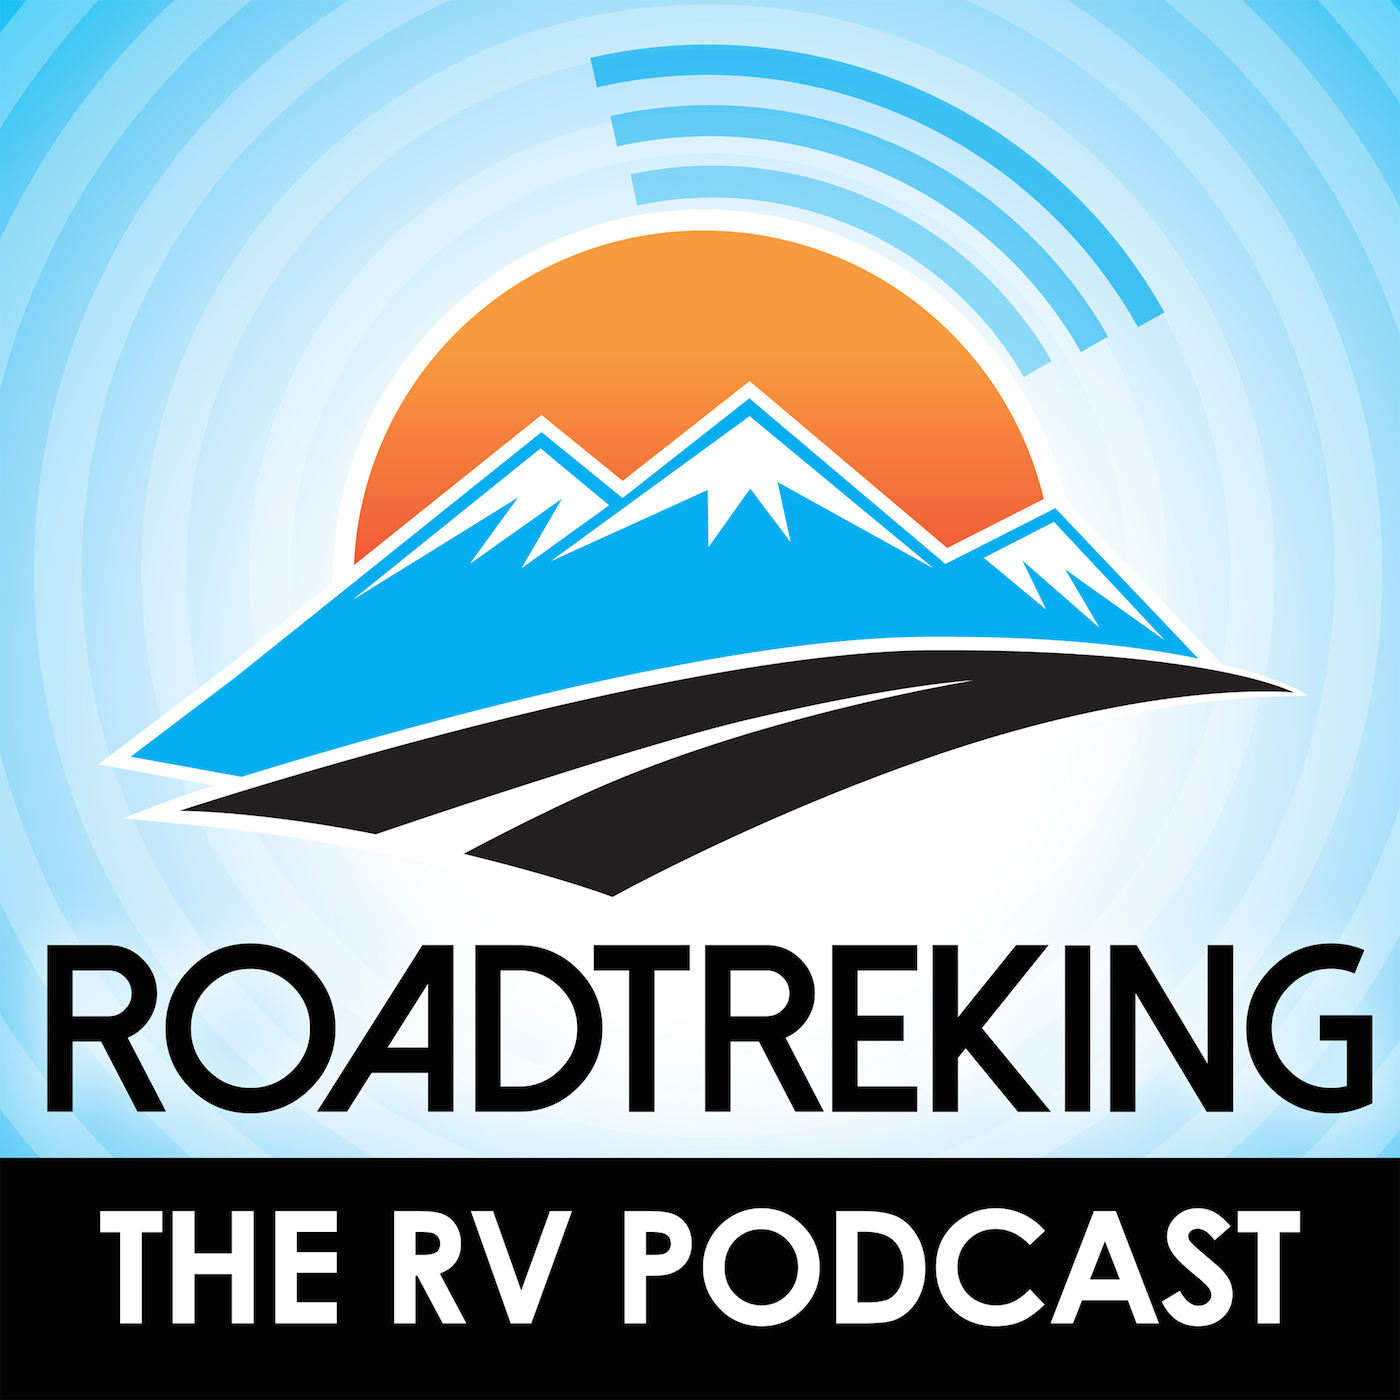 RT21 Roadtreking RV Podcast: The biggest problems RVers face